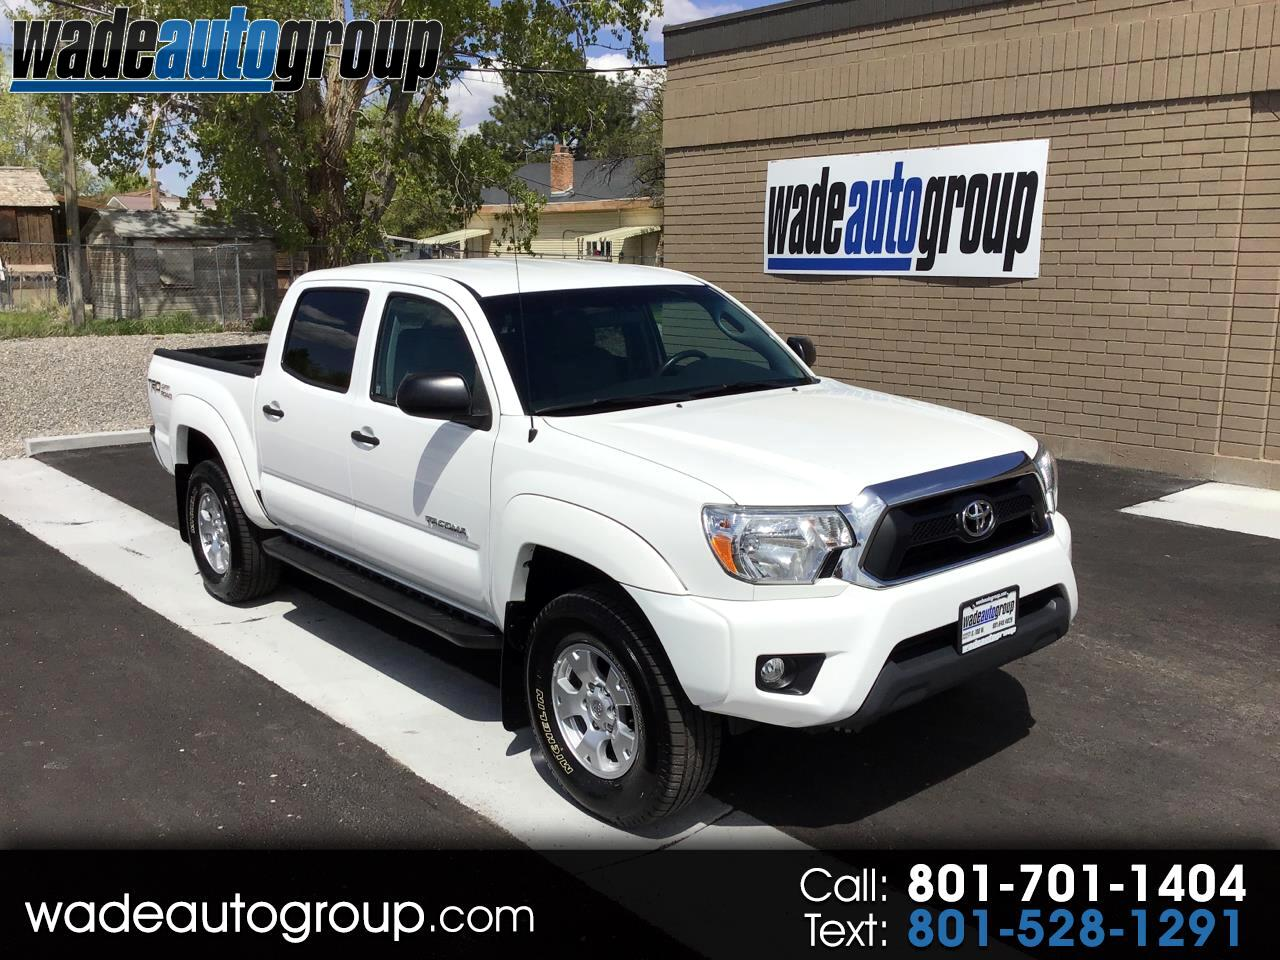 2015 Toyota Tacoma Double Cab TRD OFFROAD 4.0L V6 4WD